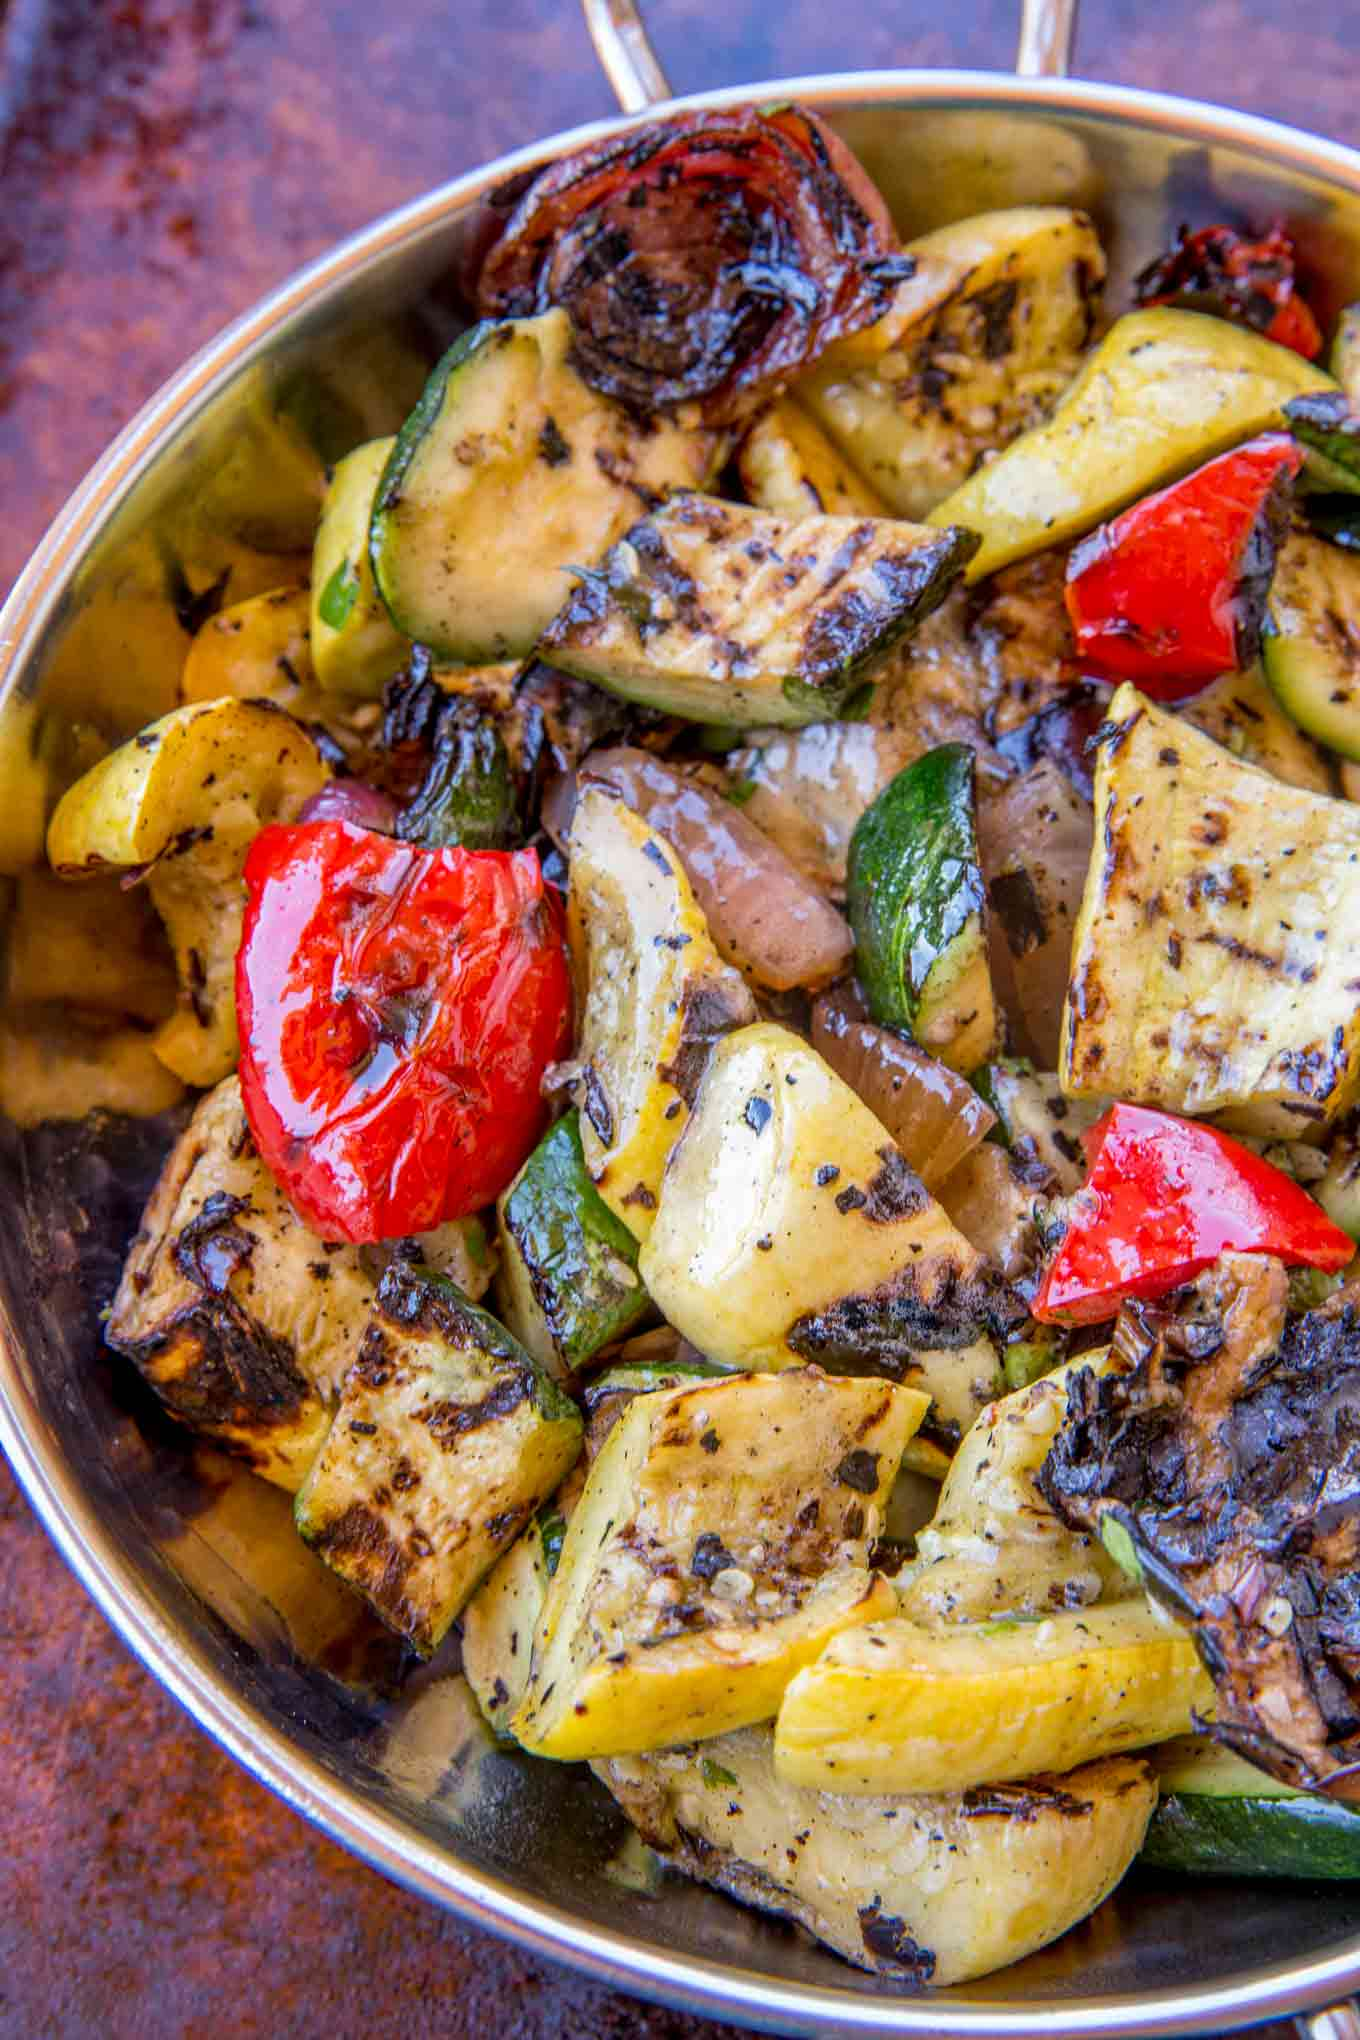 Grilled Vegetables in bowl